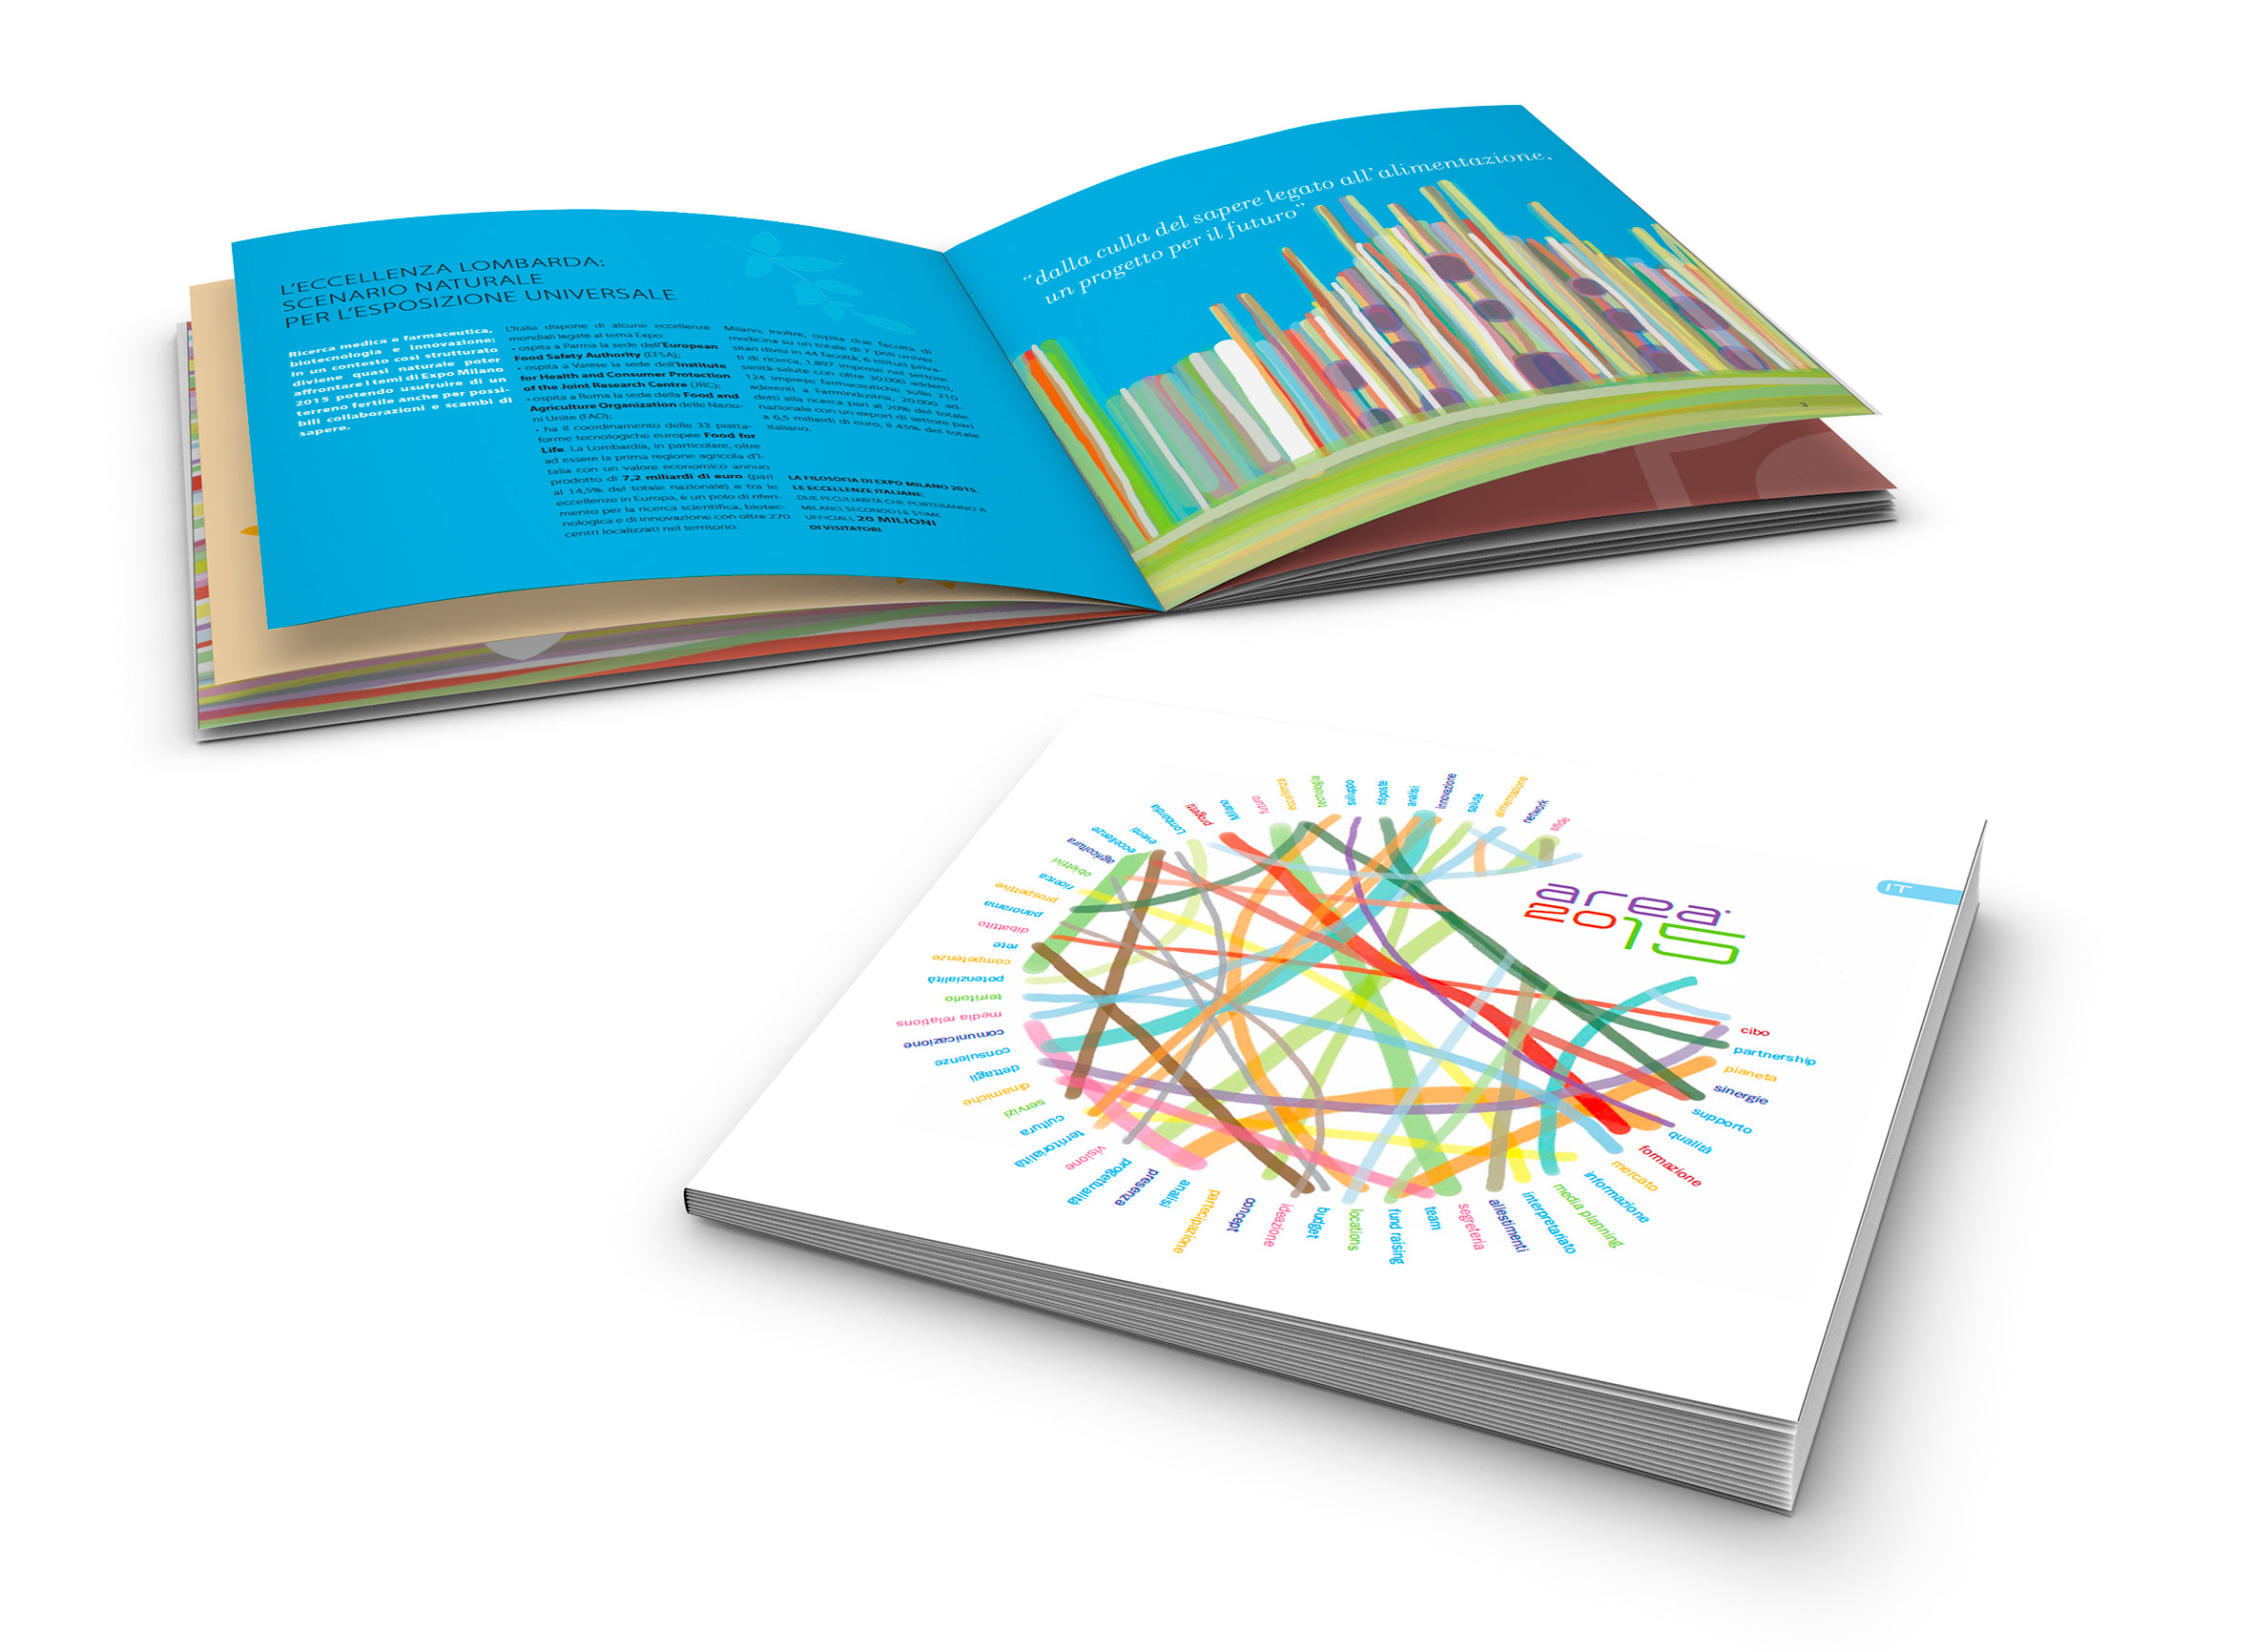 SC-Studio-Chiesa-Communication_Servizi-Area-2015-brochure